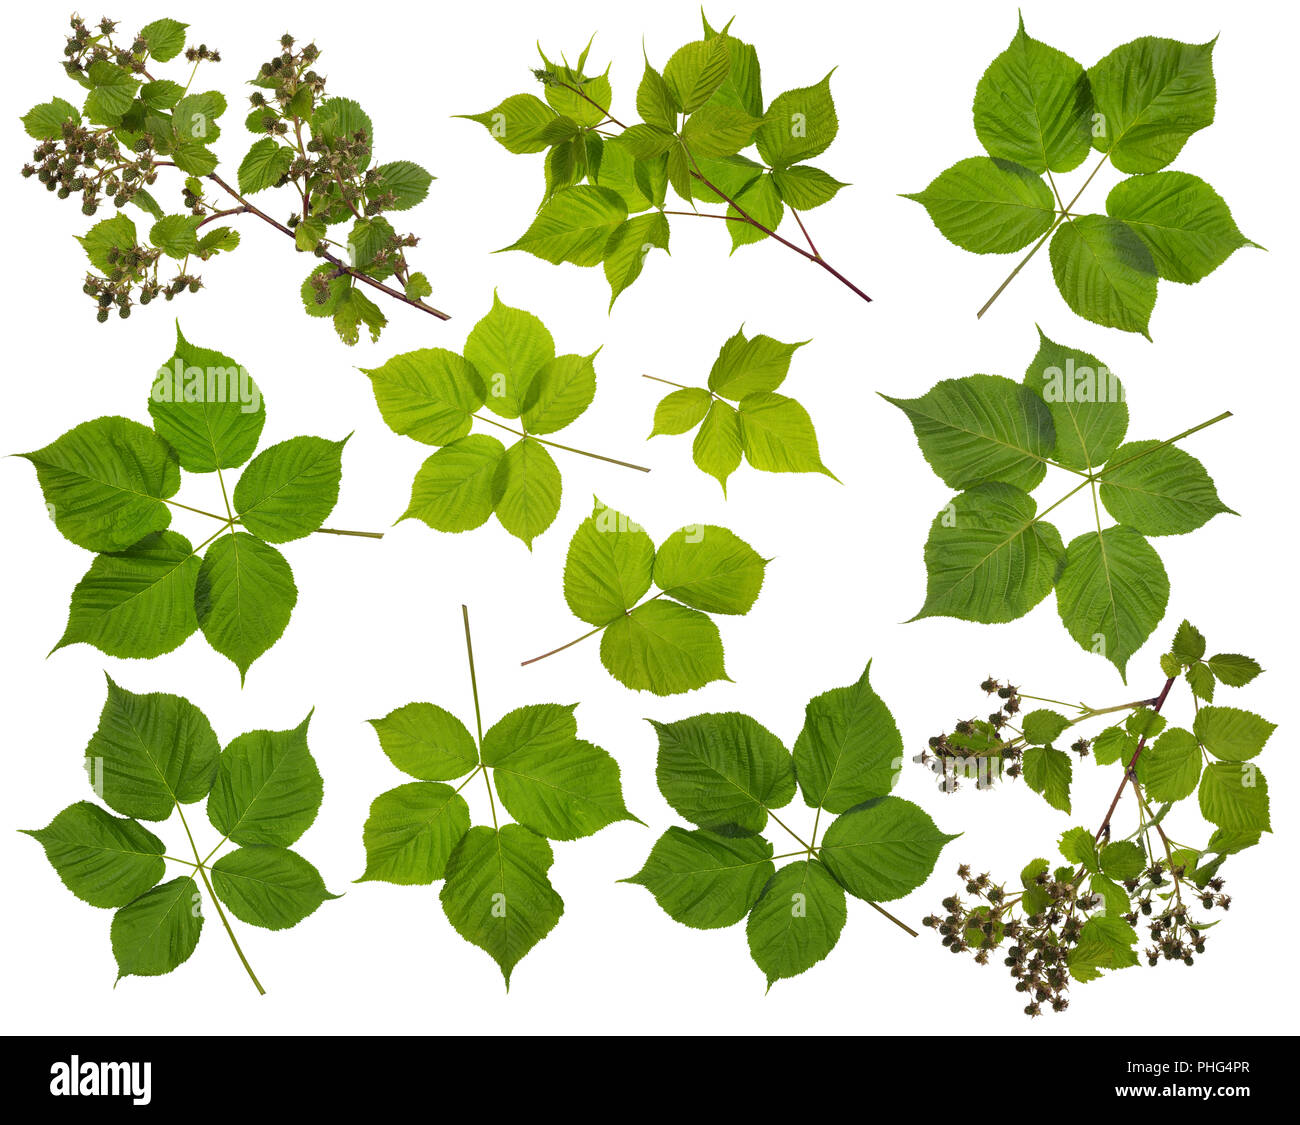 Branches And Leaves Summer Blackberry Bush Stock Photo 217328575